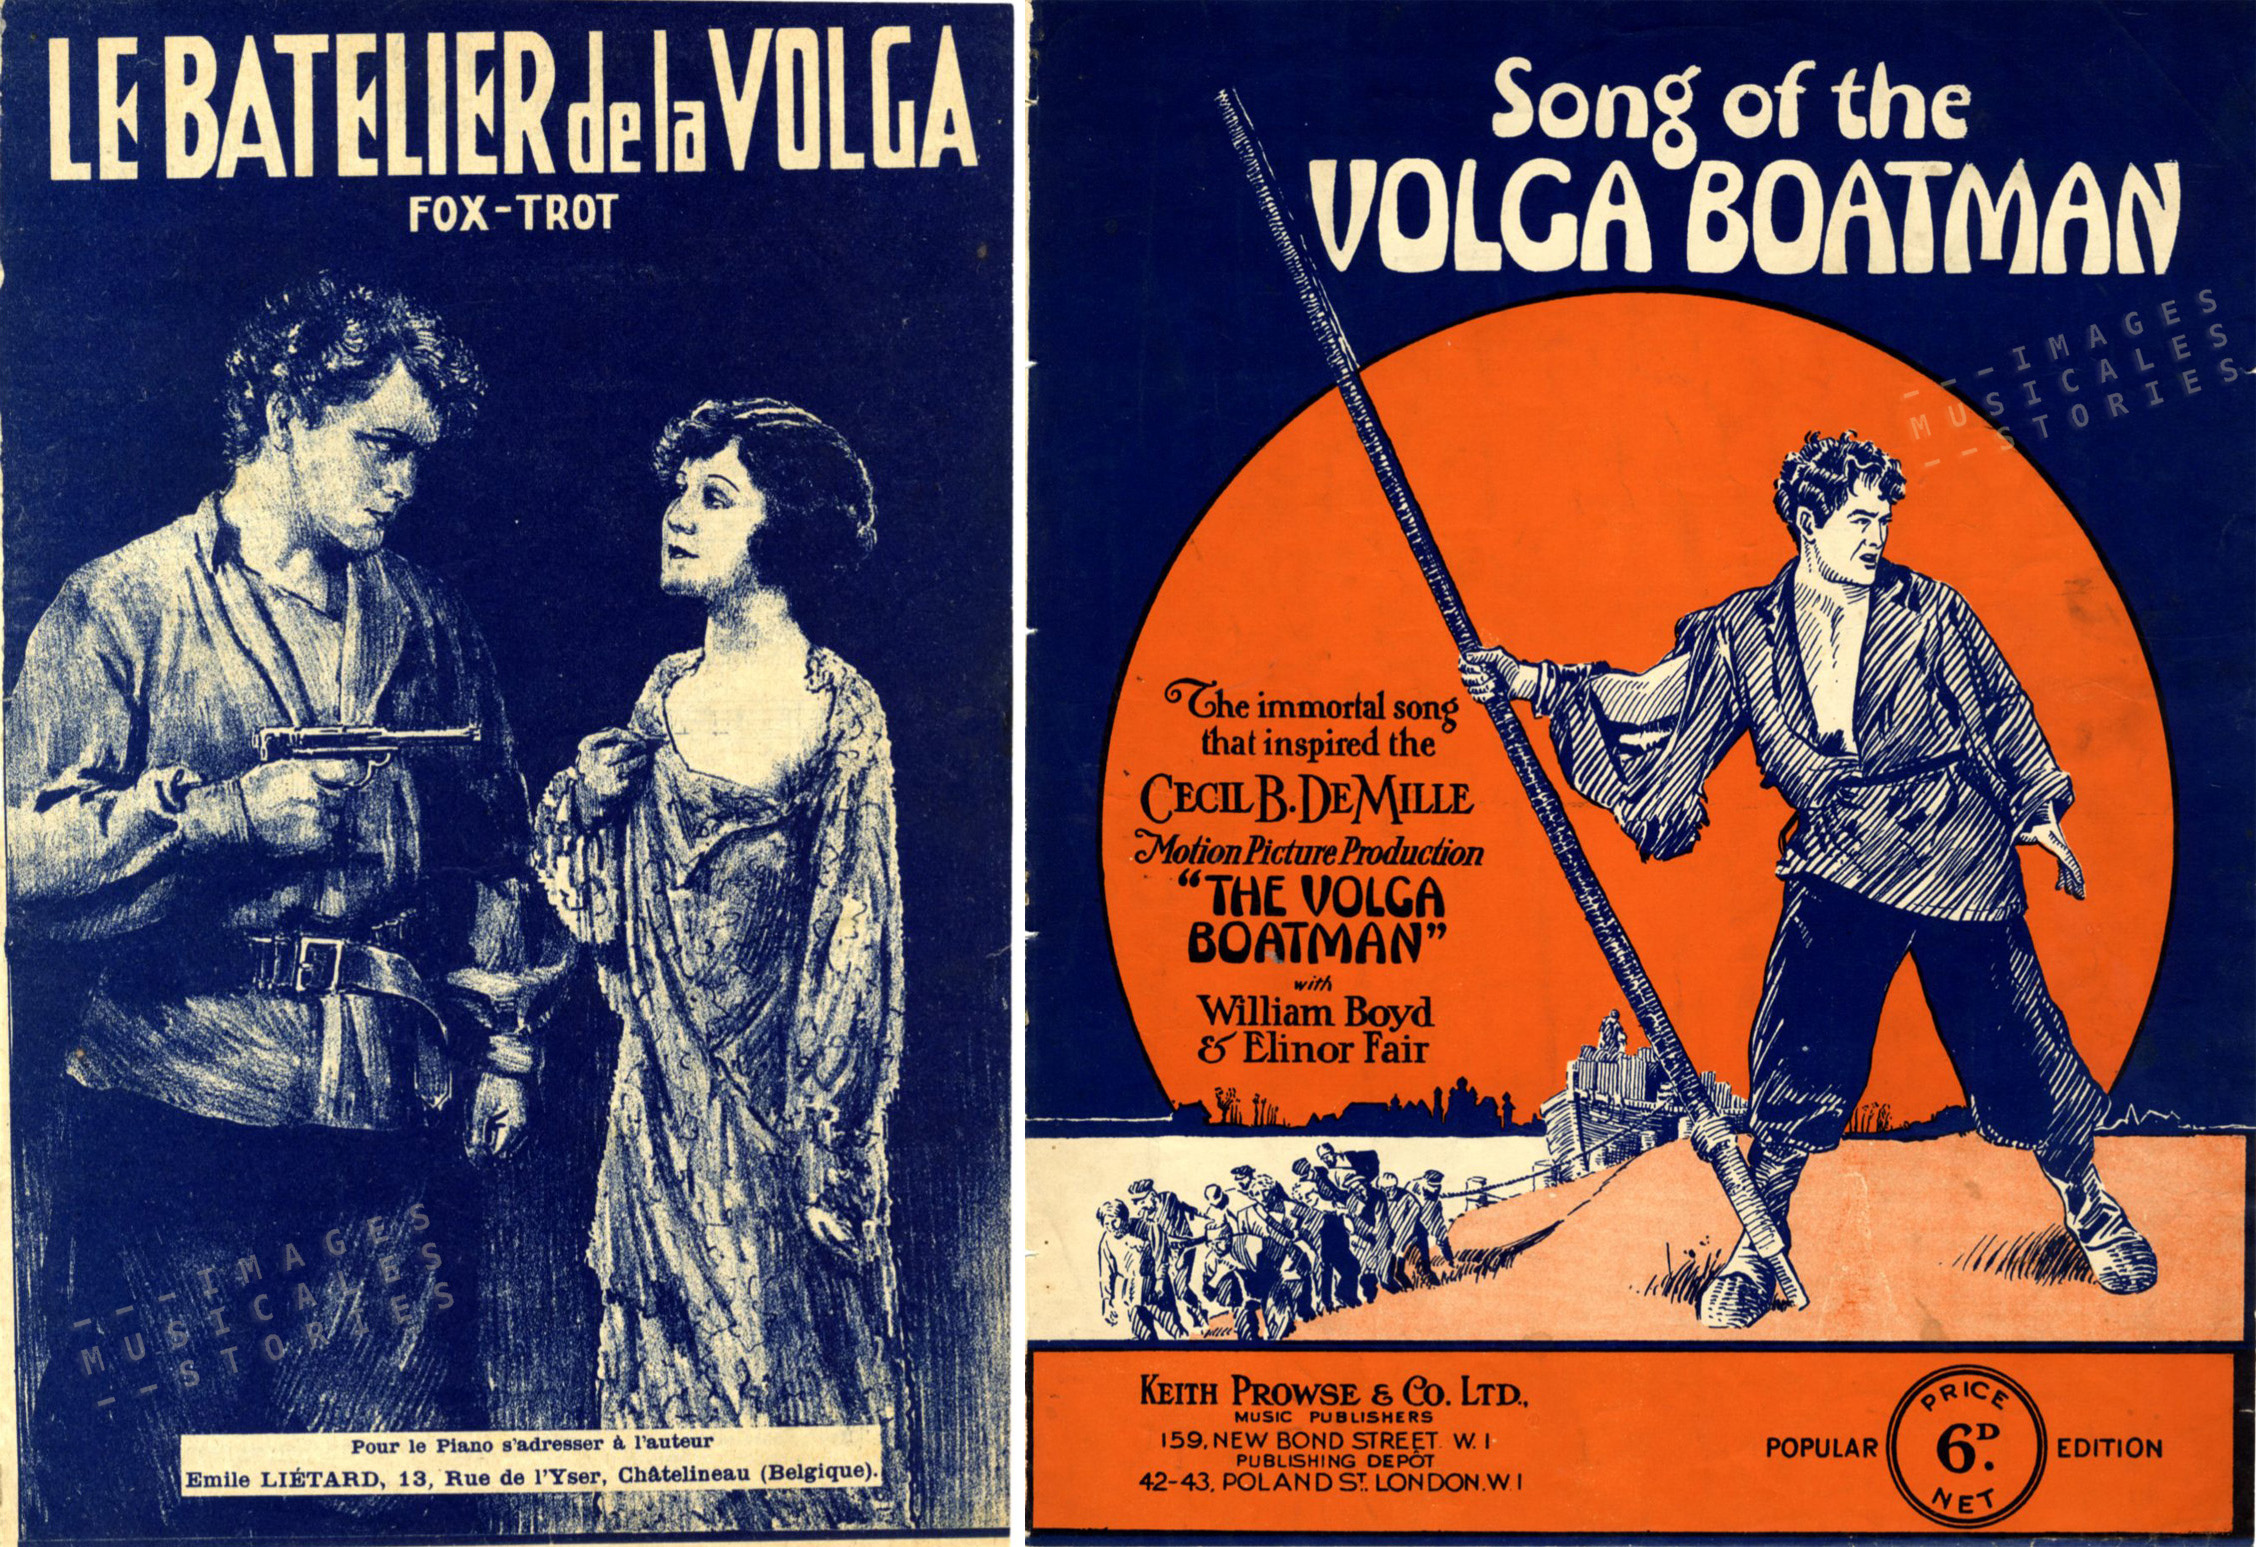 Two sheet music covers. Left: 'Le Batelier de la Volga' by Emile Liétard (Châtelineau, s.d.), unknown illustrator. Right: 'Song of the Volga Boatman' published by Keith, Prowse & Co (London, s.d.), unknown illustrator.